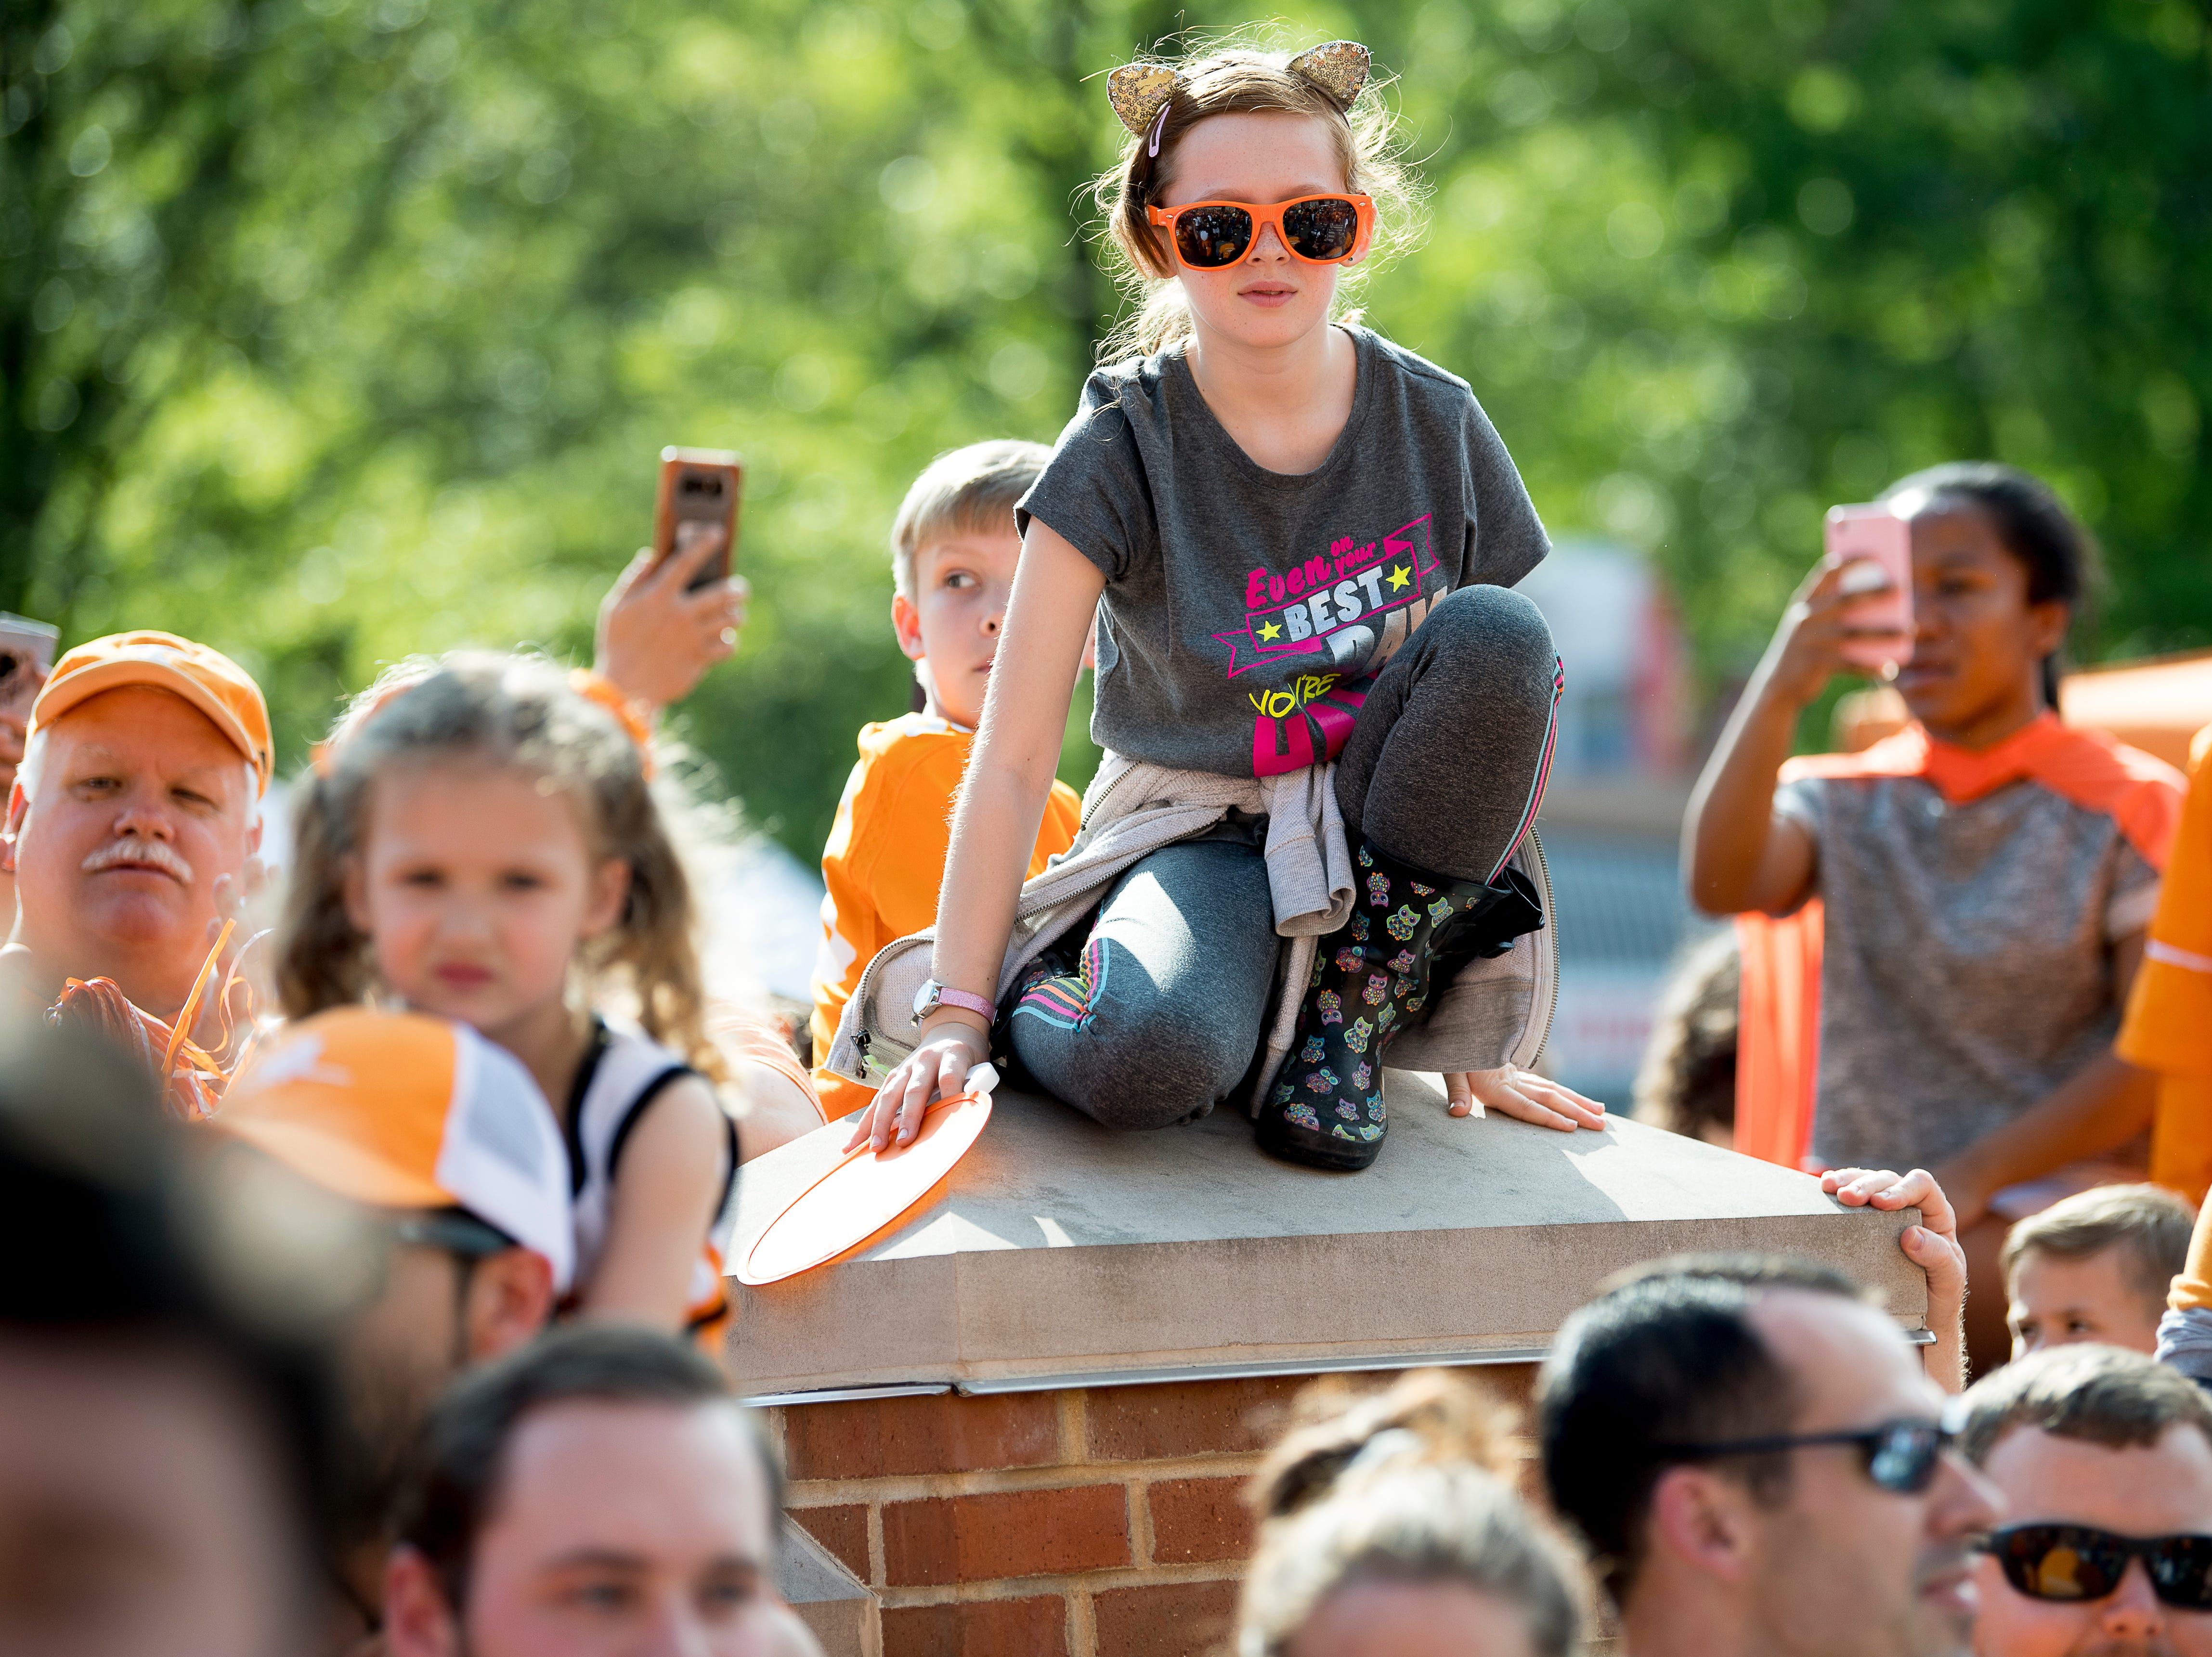 A fan gets a better view during the Vol Walk at the Tennessee Spring Game at Neyland Stadium in Knoxville, Tennessee on Saturday, April 13, 2019.